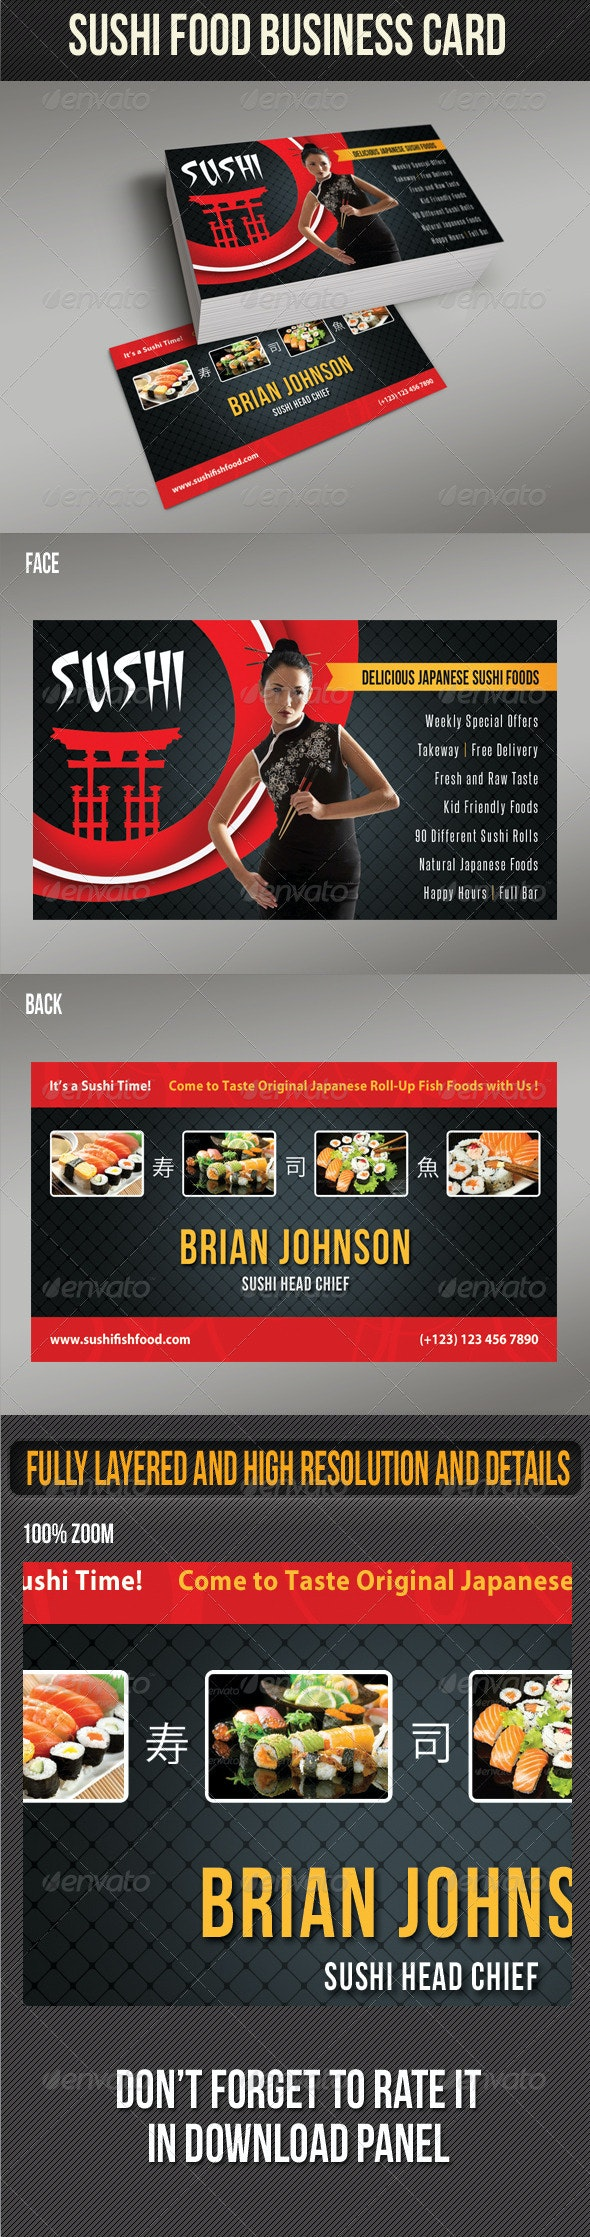 Sushi Food Business Card 01 - Industry Specific Business Cards